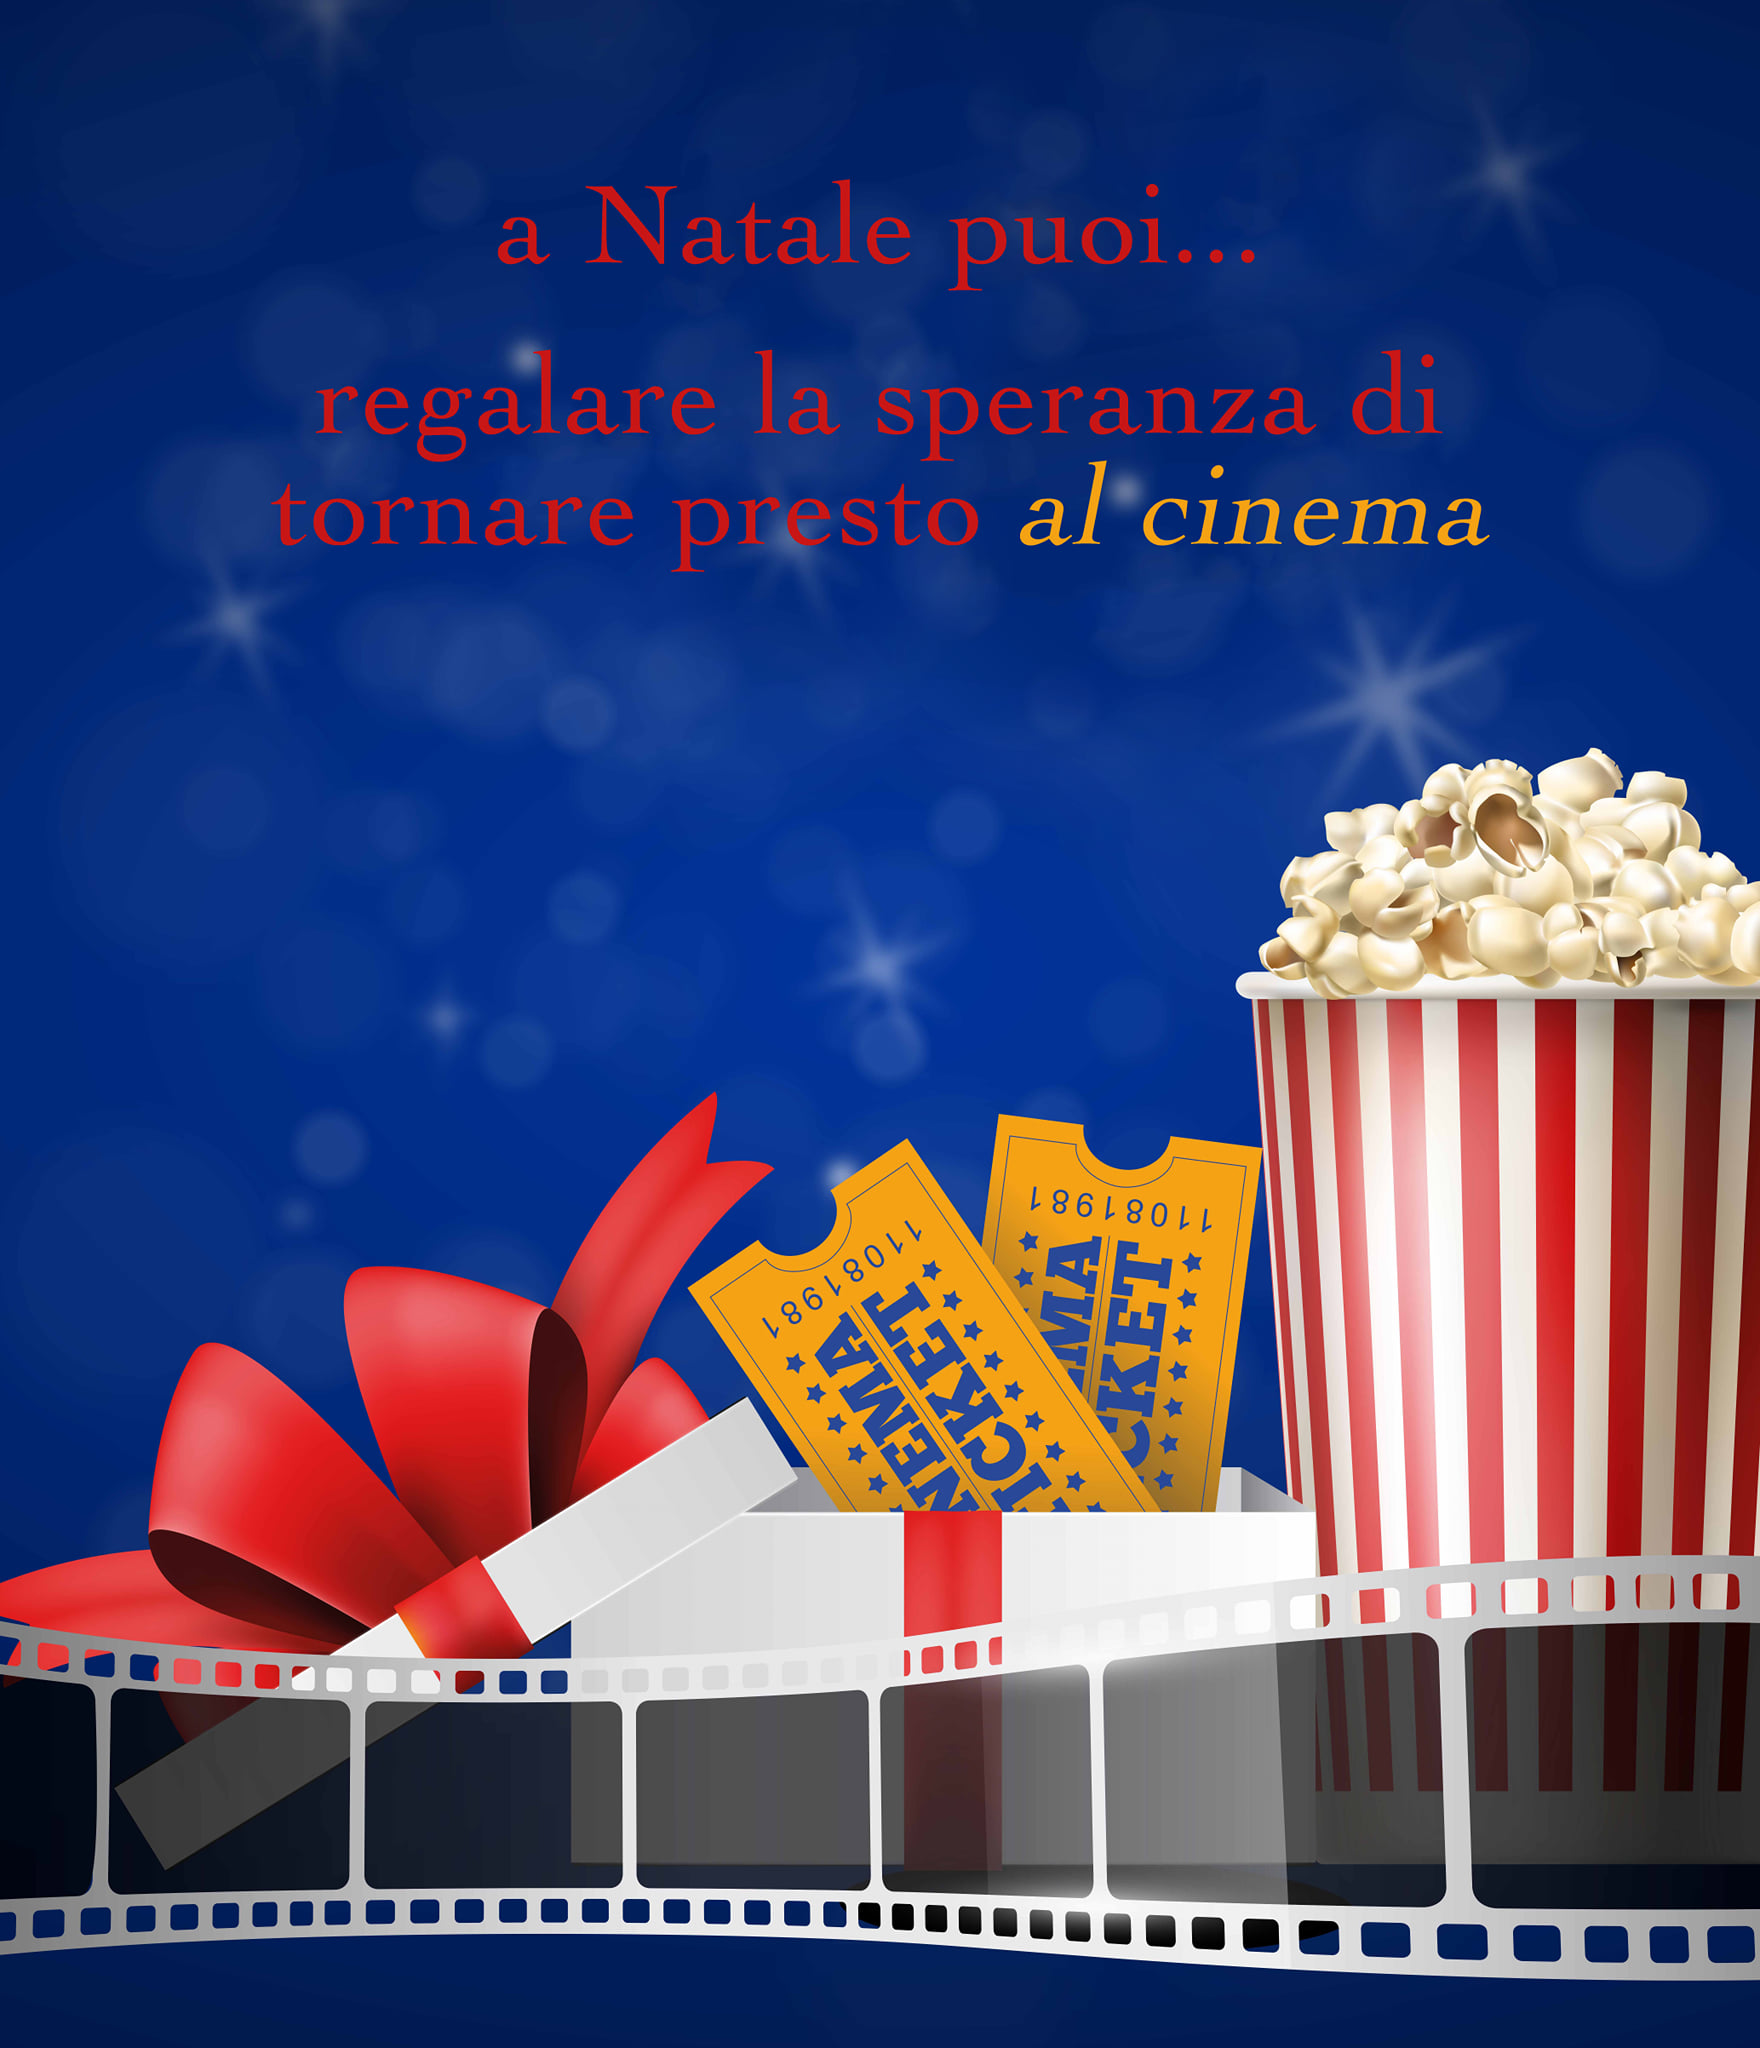 regali natale mocu cinema